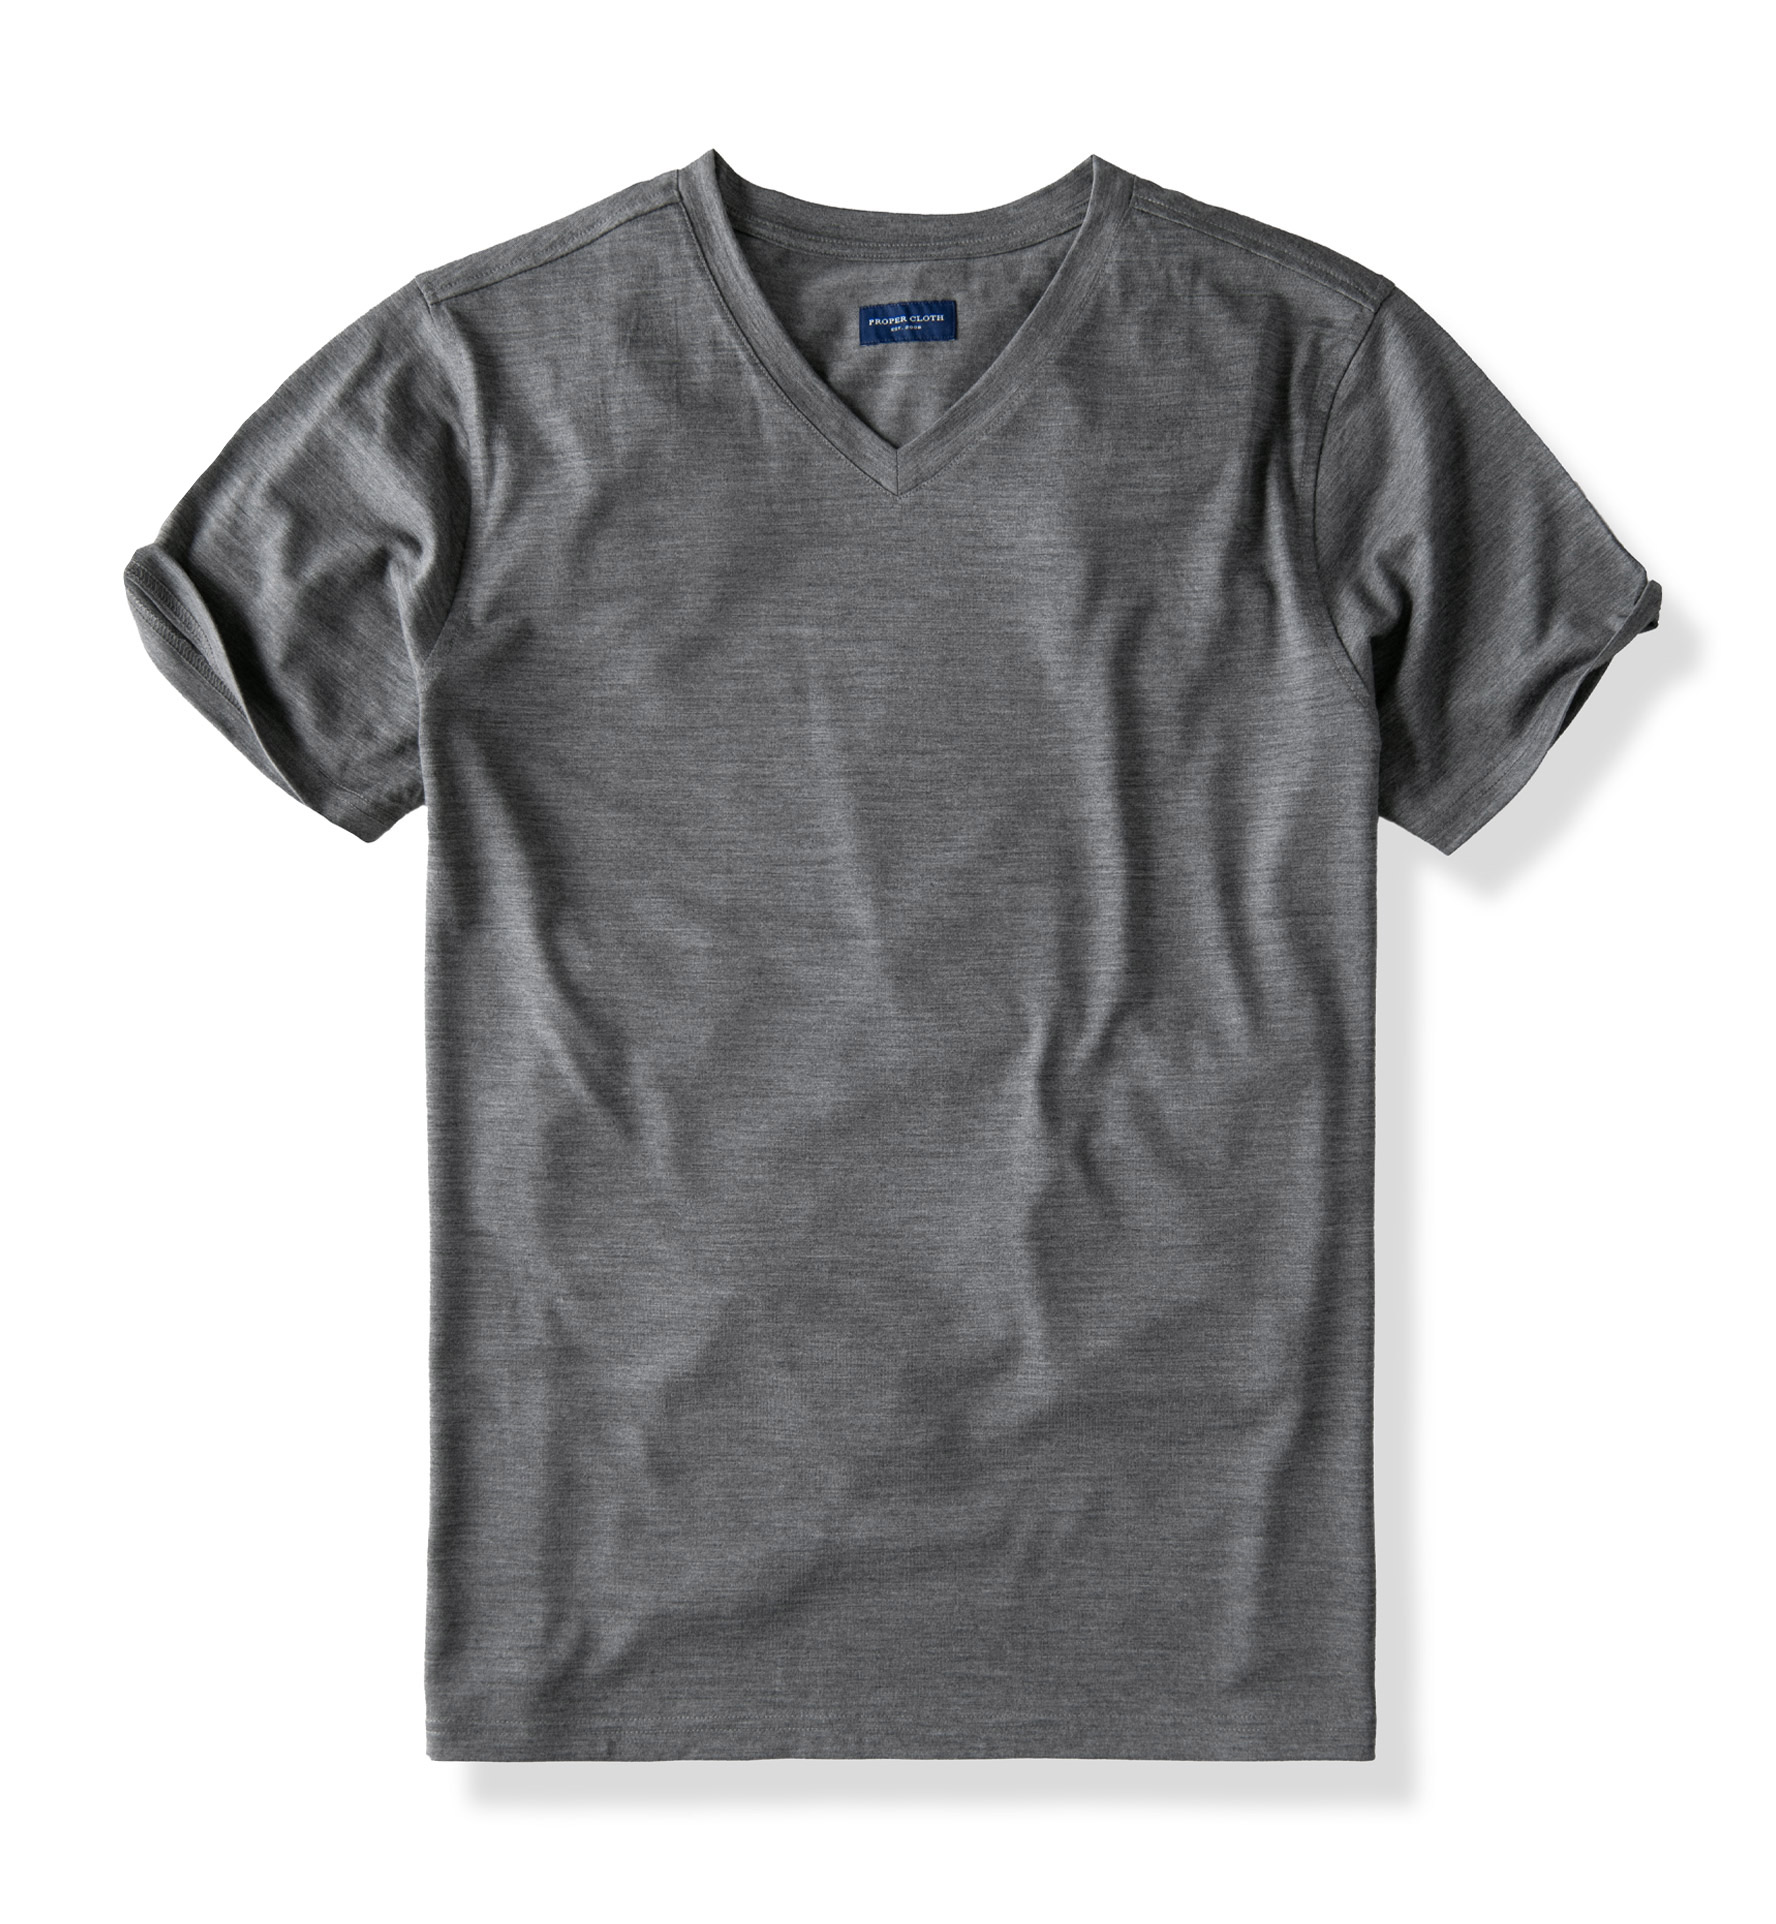 Zoom Image of Grey Merino Wool V-Neck T-Shirt